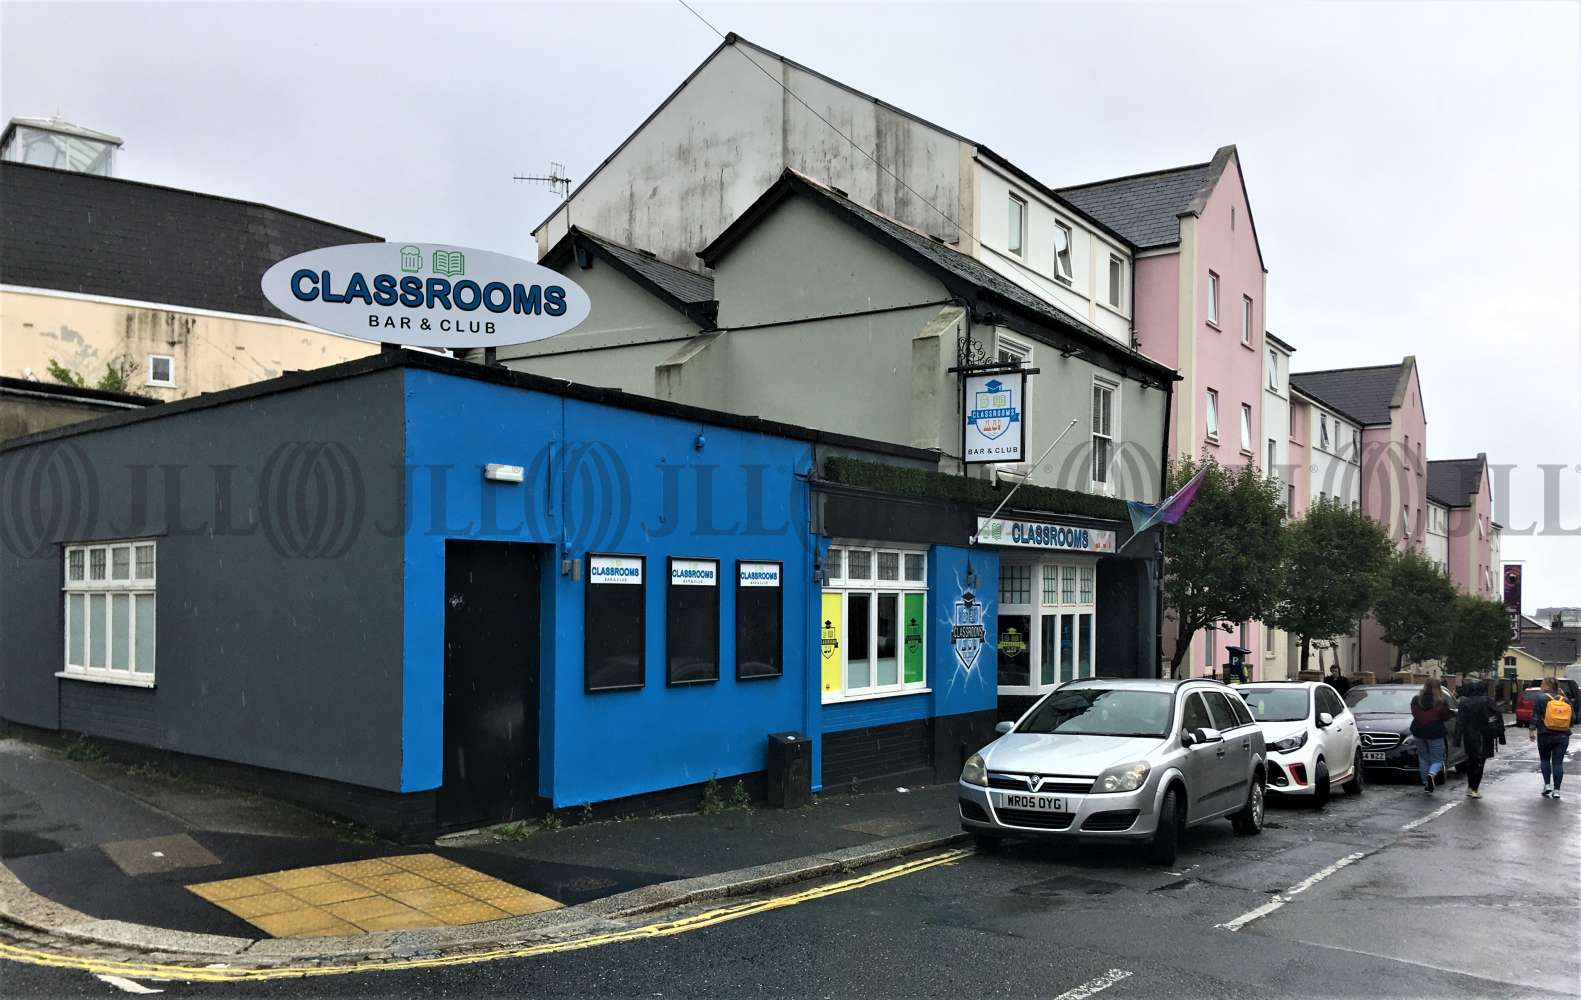 Leisure Plymouth, PL4 8BZ - Classrooms Bar and Club - 95262